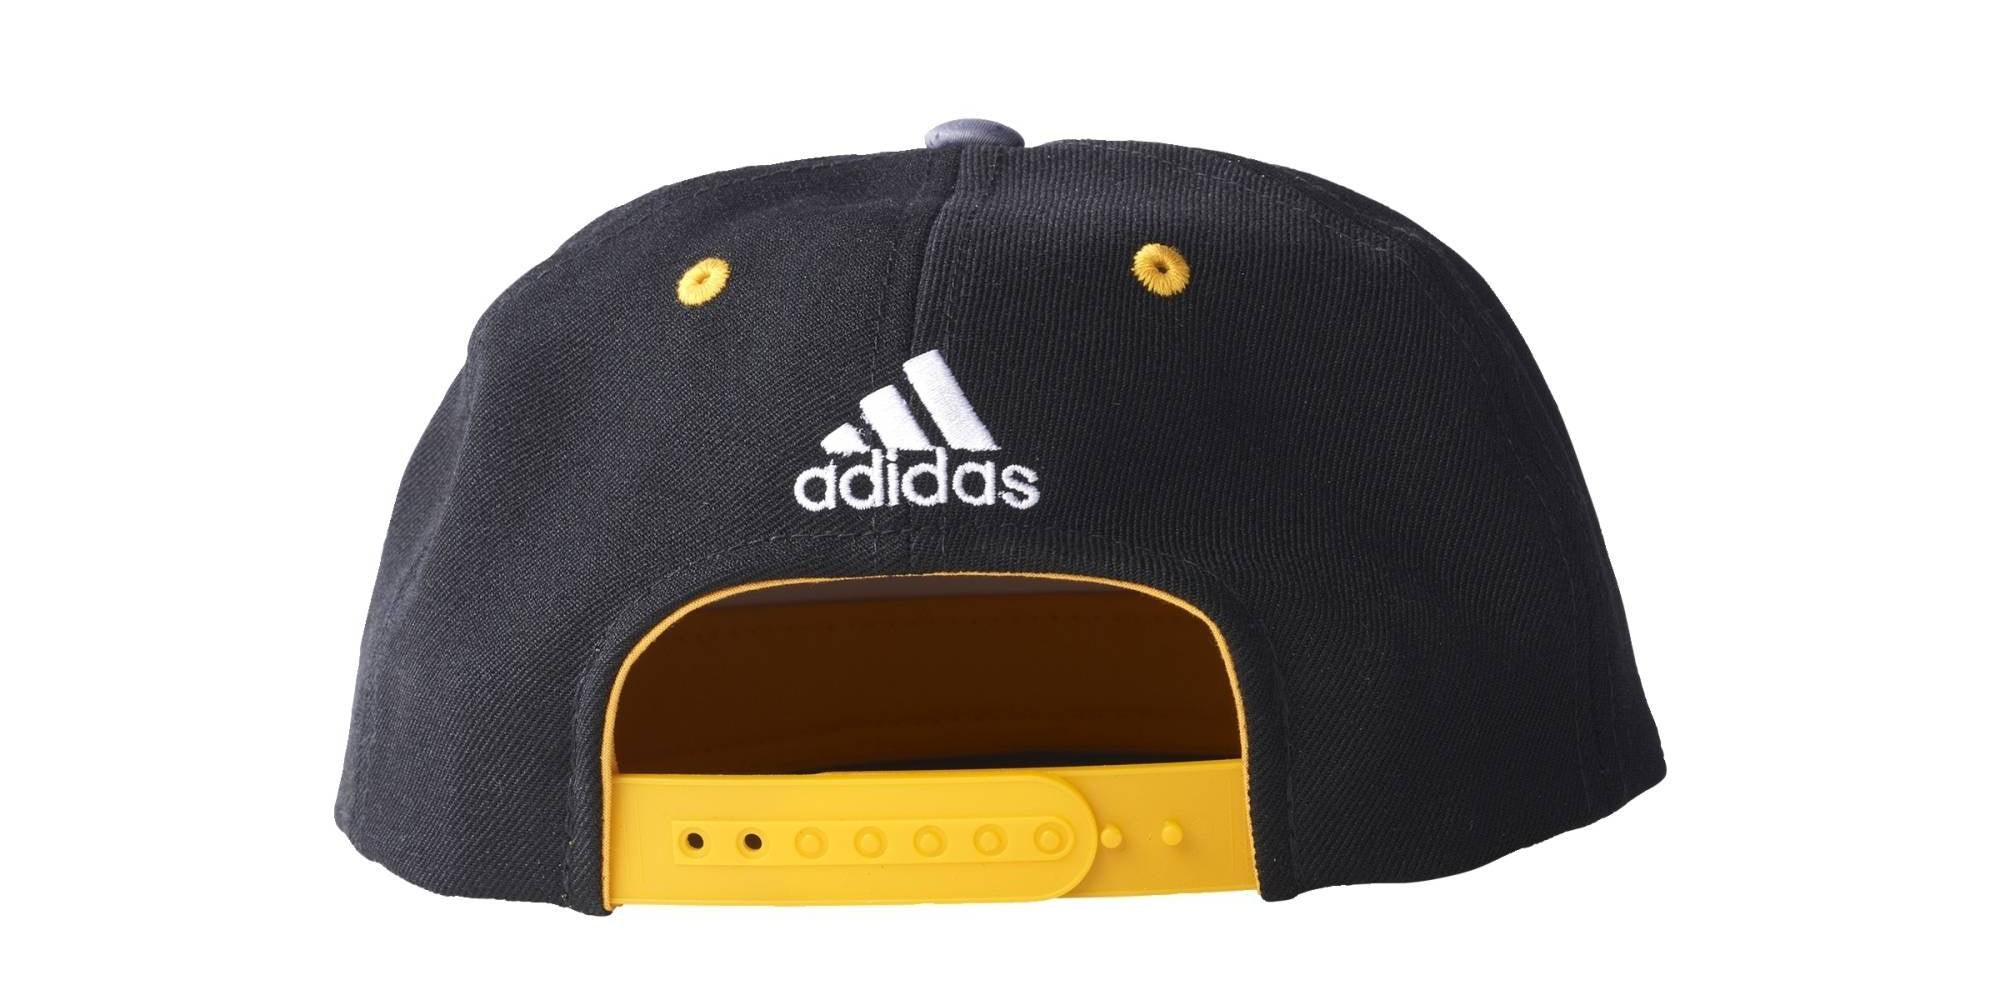 Adidas NBA LA Lakers Flat Peak Cap - Bleck/White/Collegiate Gold